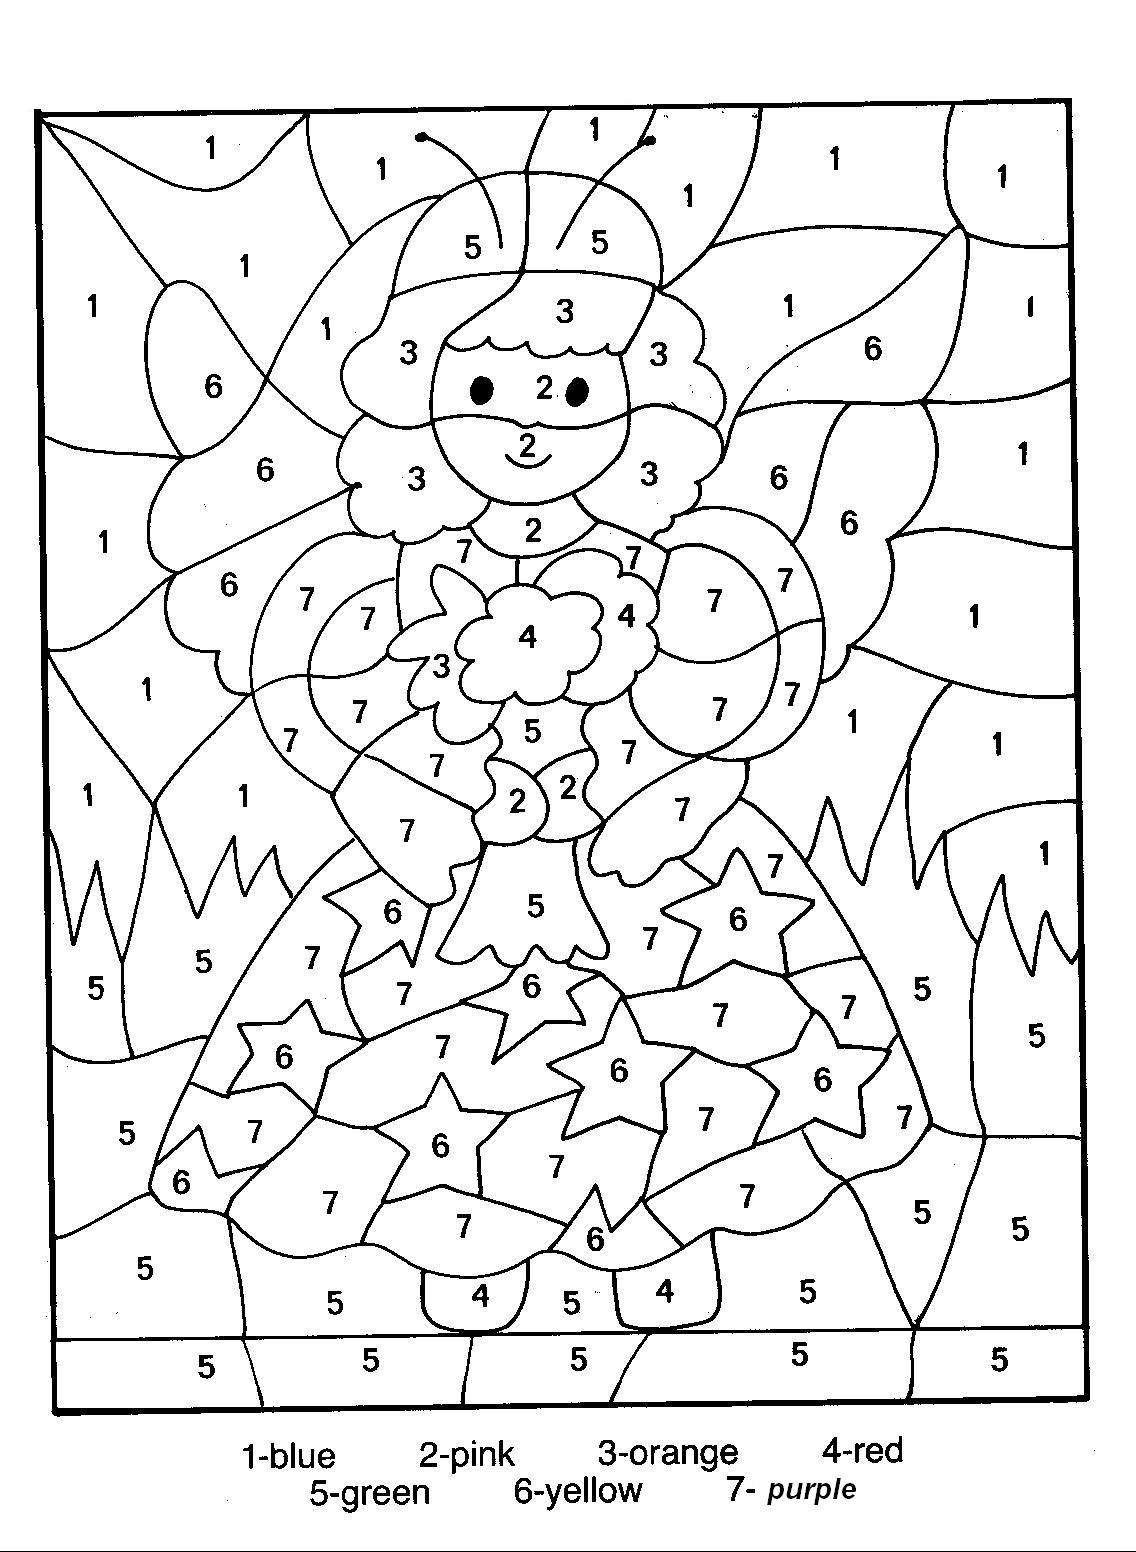 color by number coloring pages here is a small collection of color by number worksheets for your aspiring artists whether your child is working on her - Number Coloring Pages